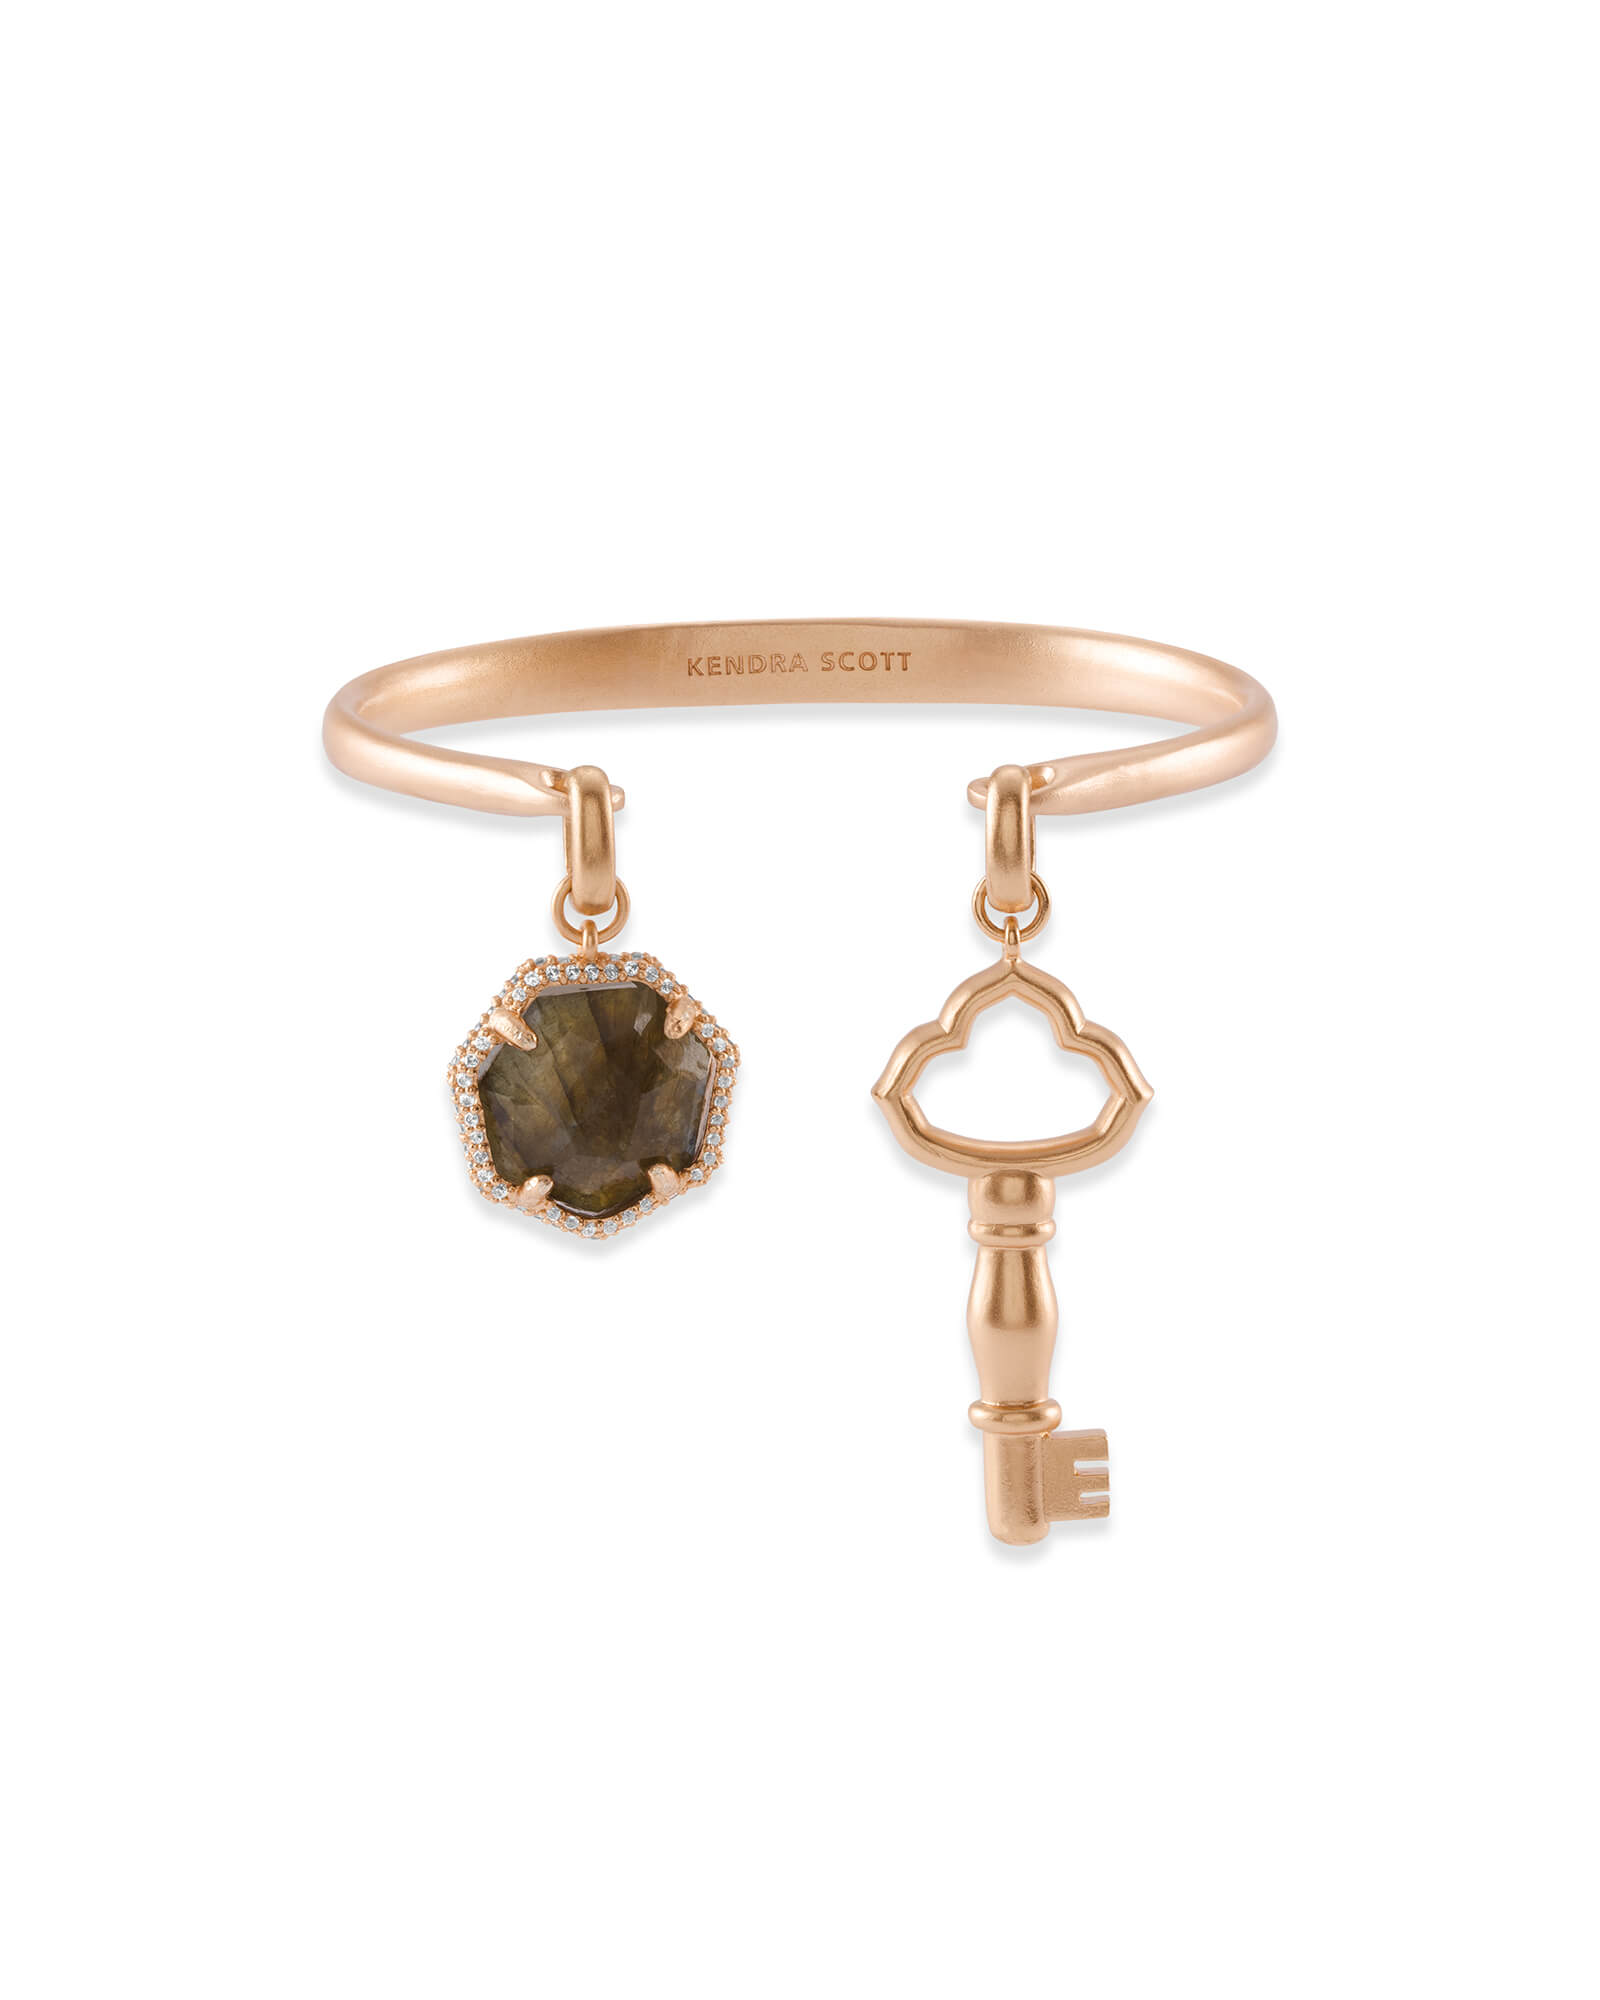 Imagination Charm Bracelet Set in Rose Gold